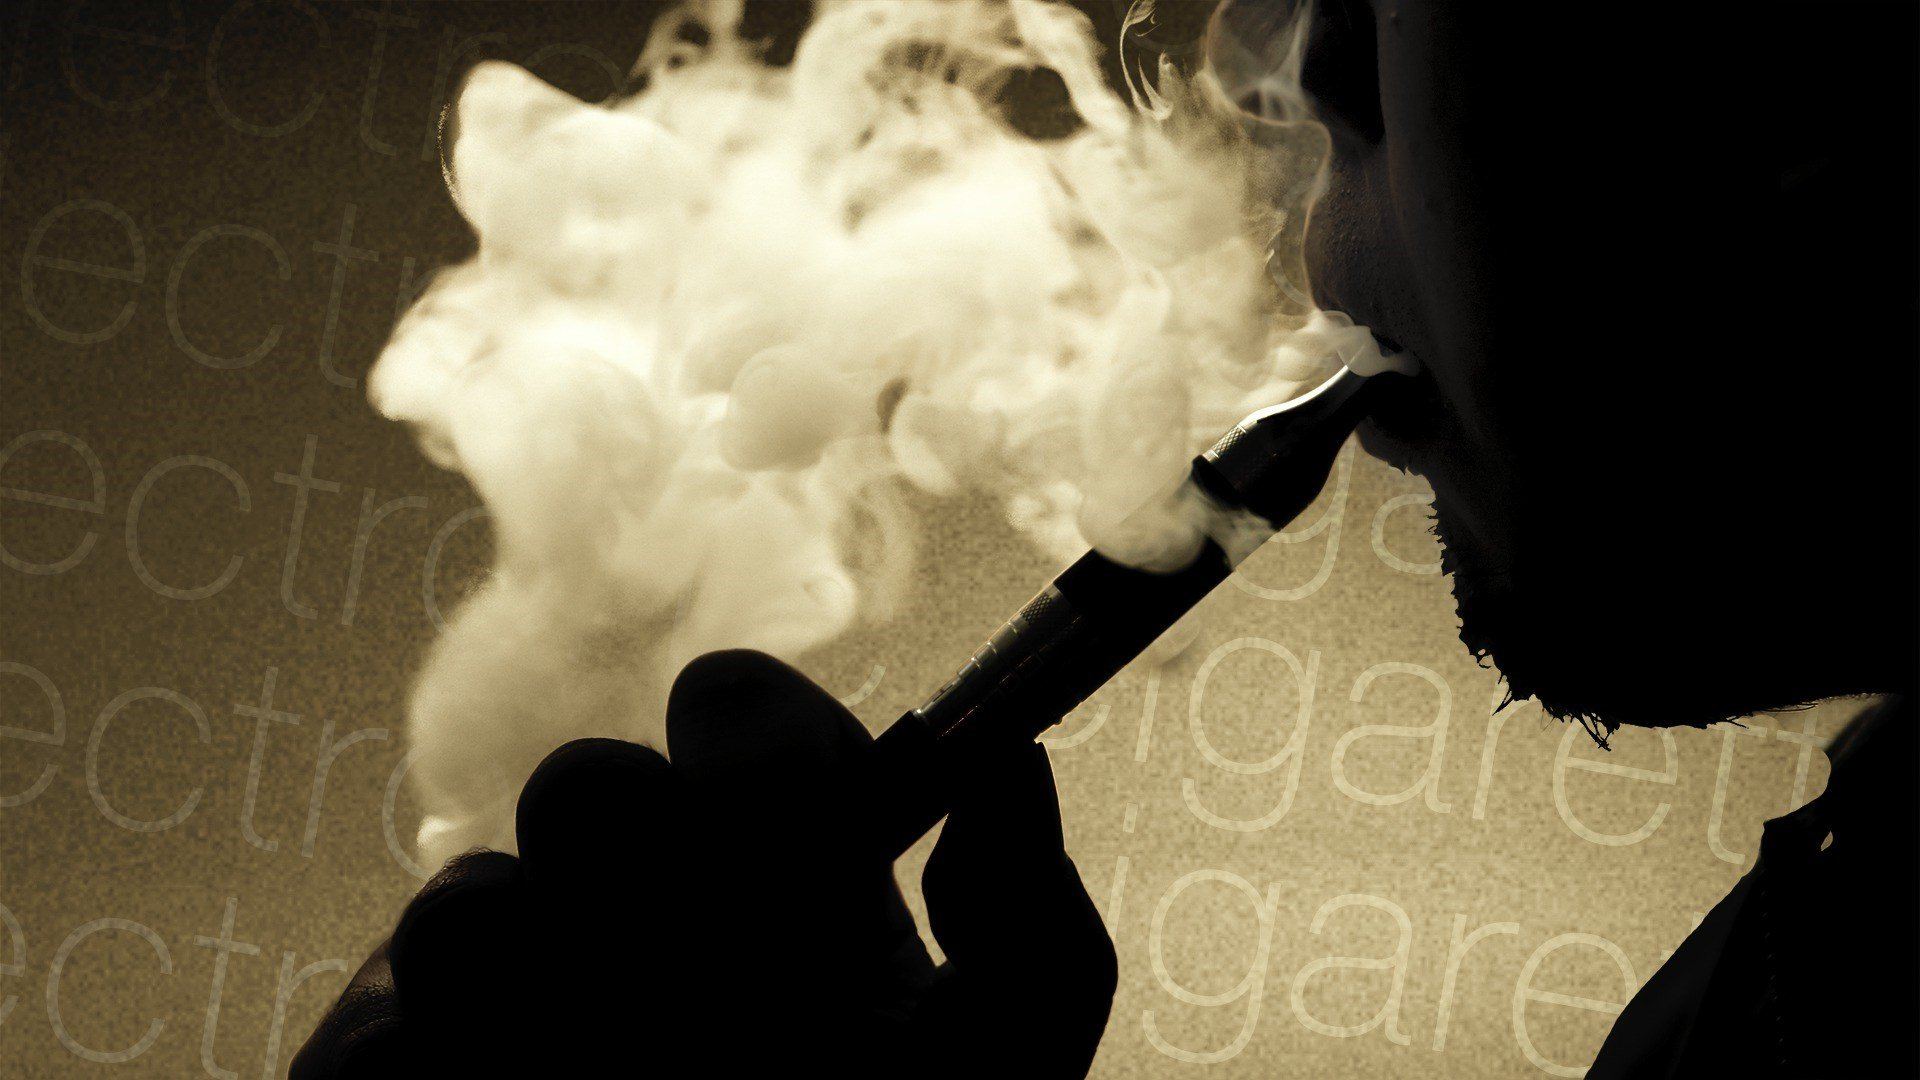 Cuomo bans vaping e-cigs indoors in public places